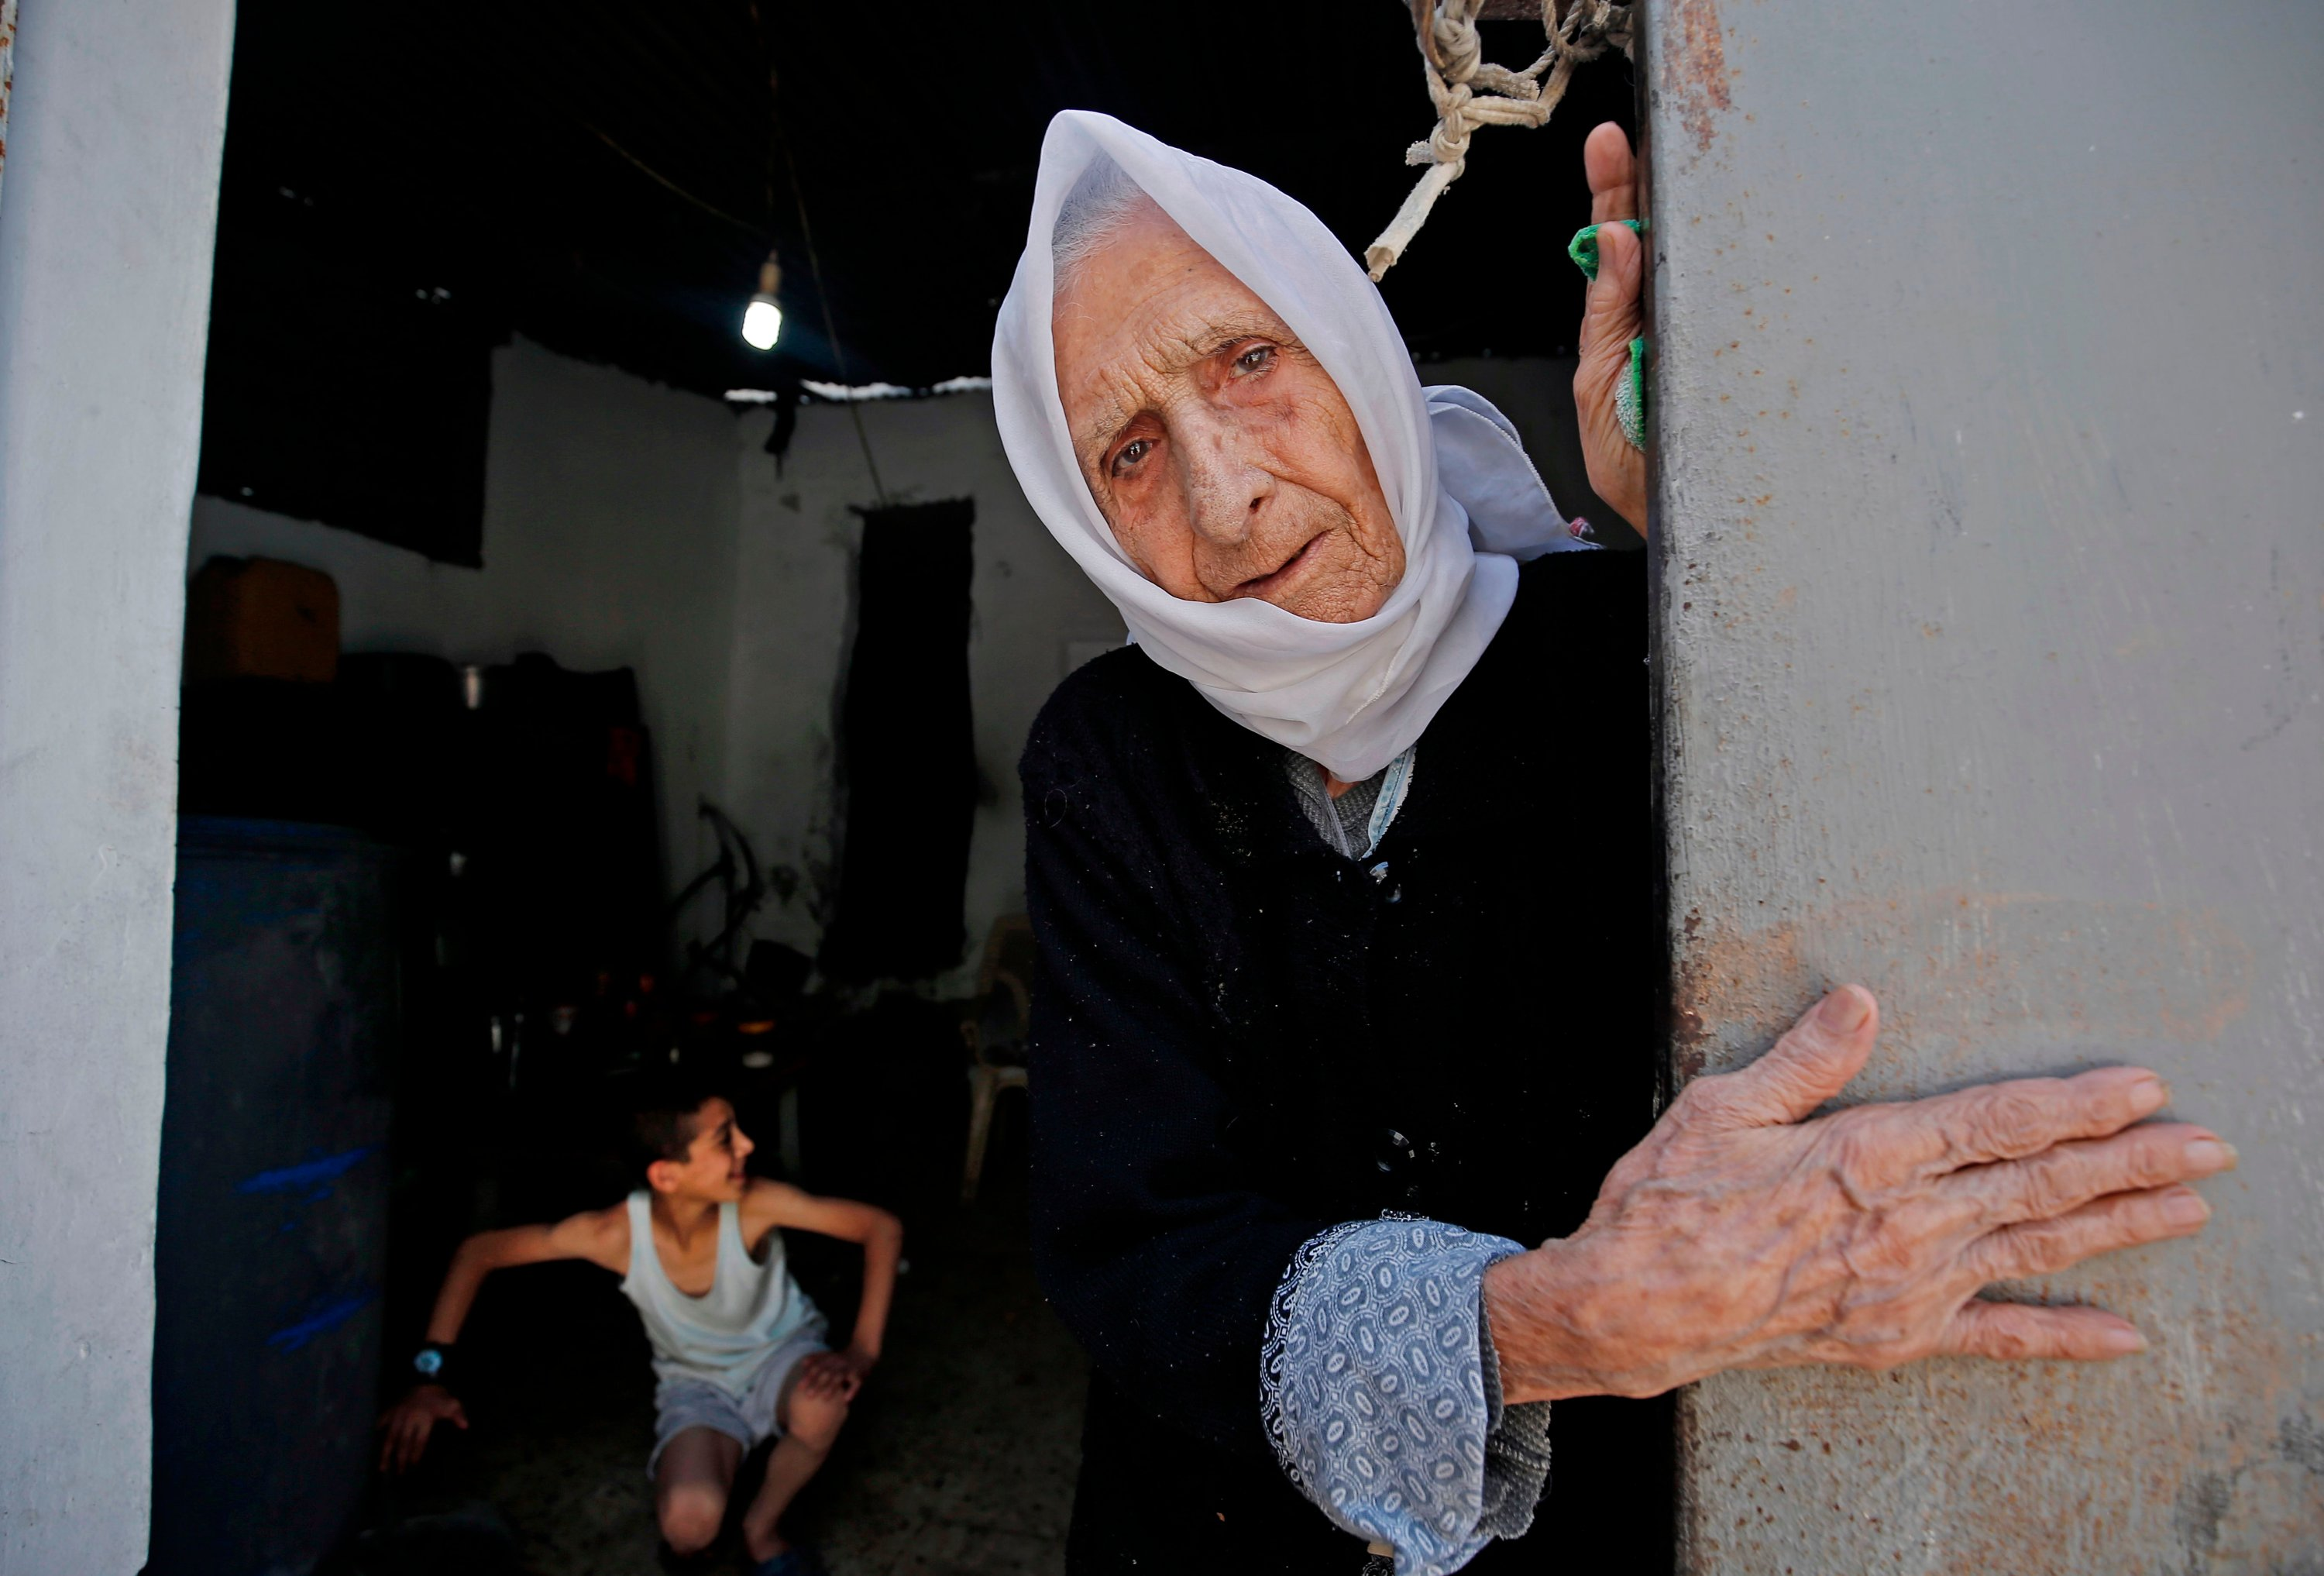 A Palestinian refugee elderly woman, who witnessed the 1948 Nakba, looks out of her house's entrance door at Al-Shati refugee camp in Gaza City, May 15, 2020. (AFP)